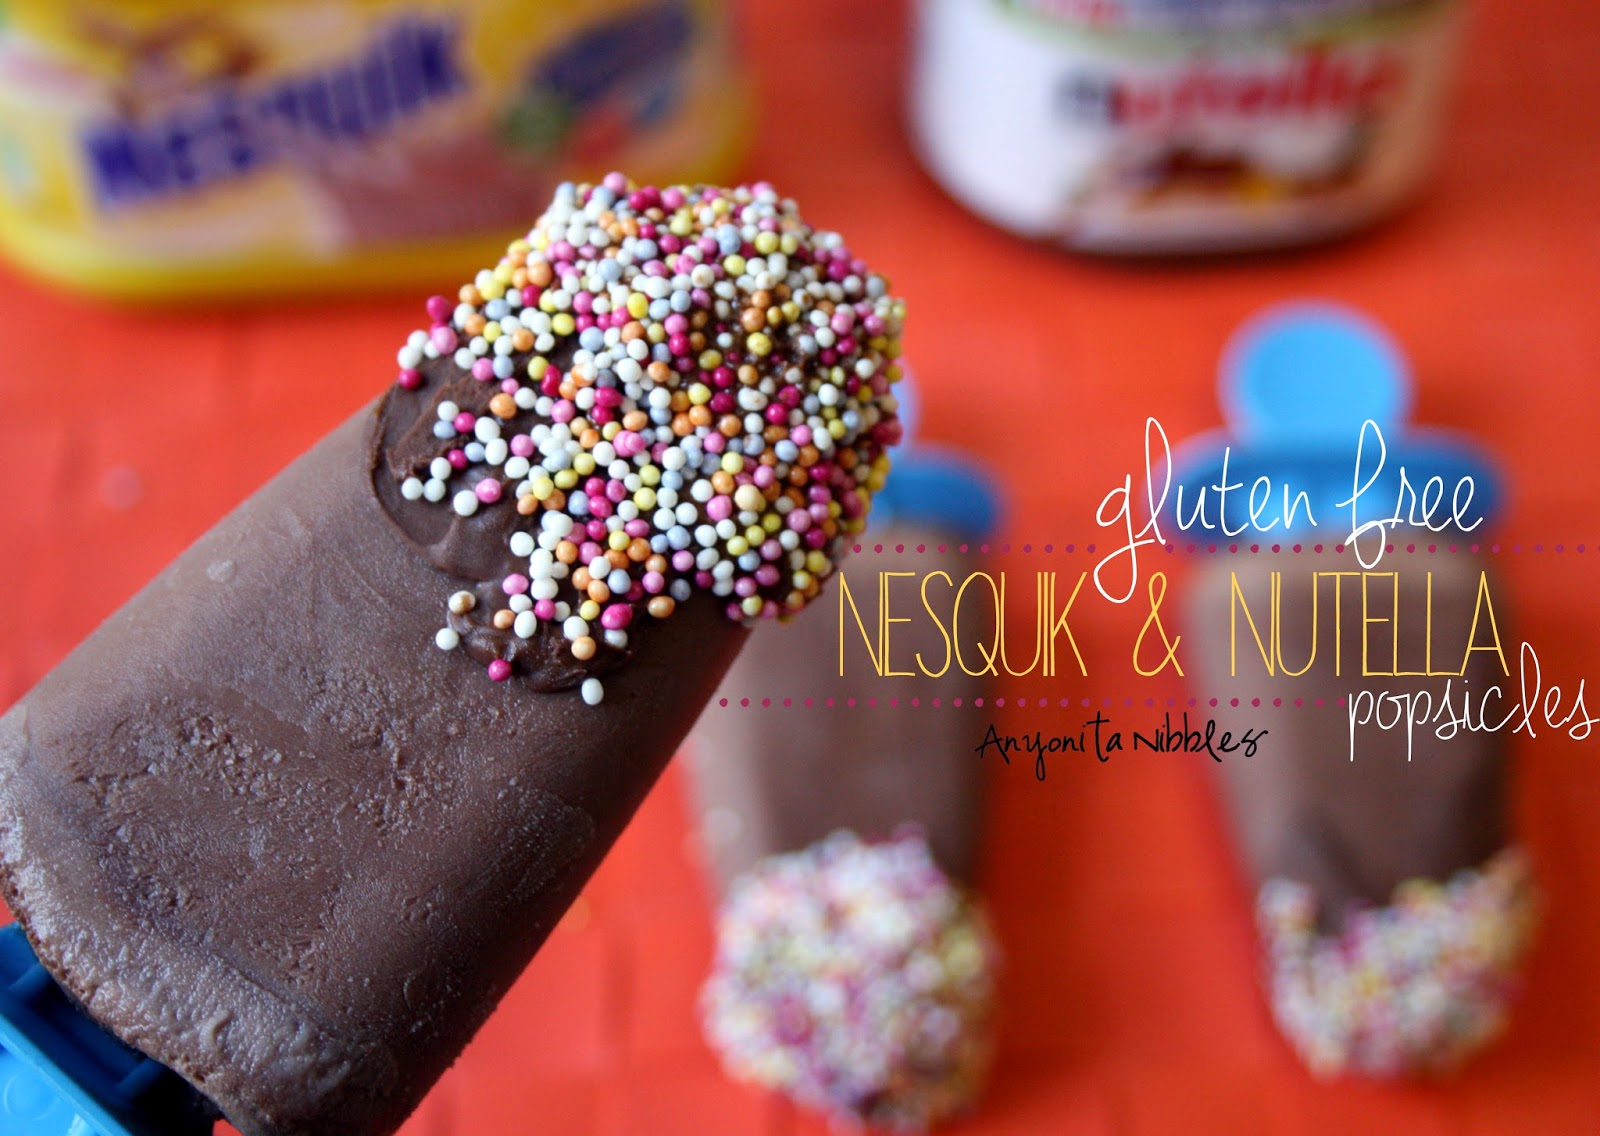 Gluten Free Nesquik & Nutella Popsicles from Anyonita Nibbles